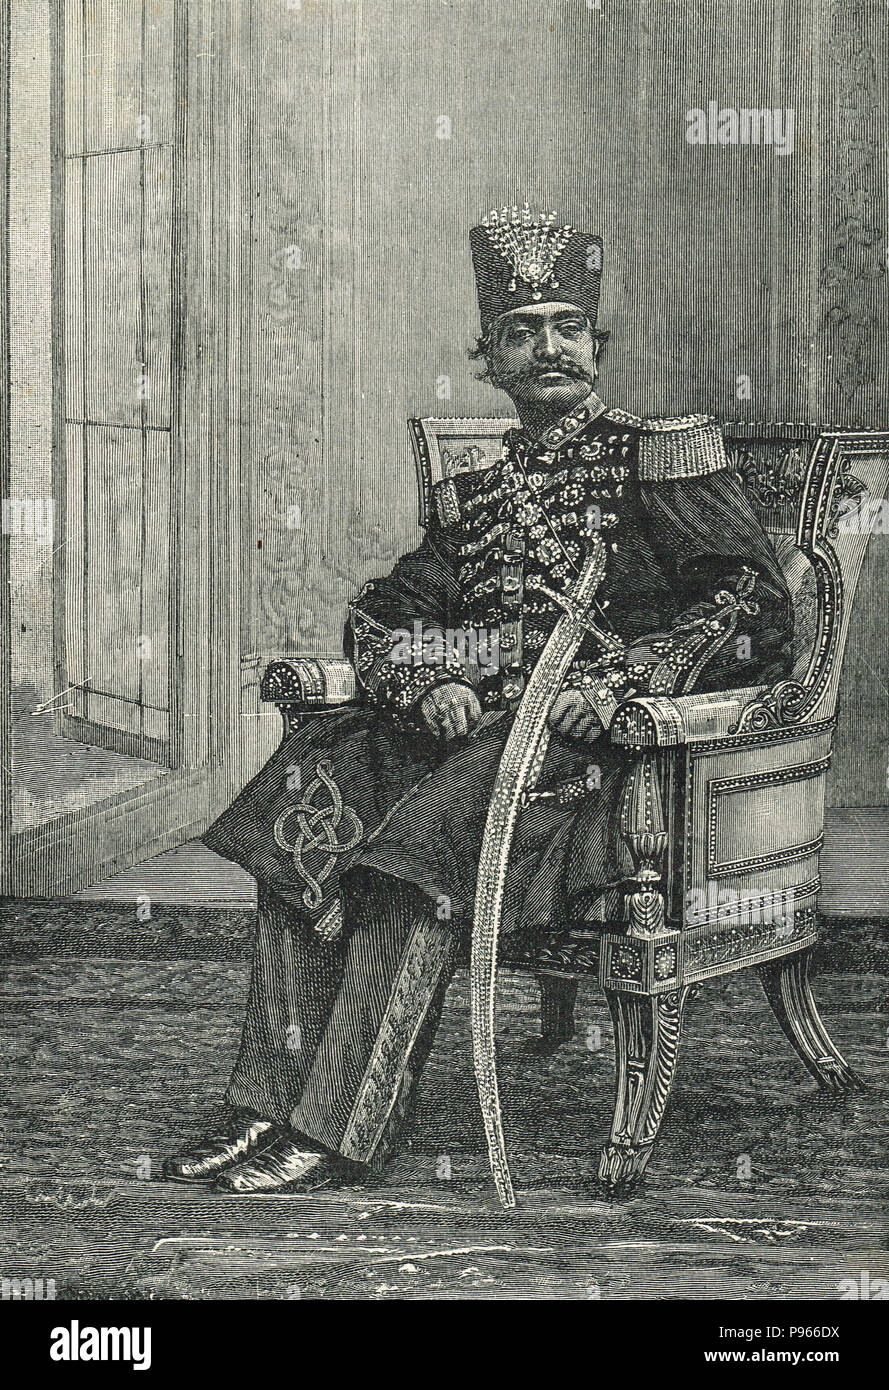 Naser al-Din Shah Qajar, Shah of Persia,  also known as Nassereddin Shah Qajar, was the King of Persia from 5 September 1848 to 1 May 1896 when he was assassinated - Stock Image